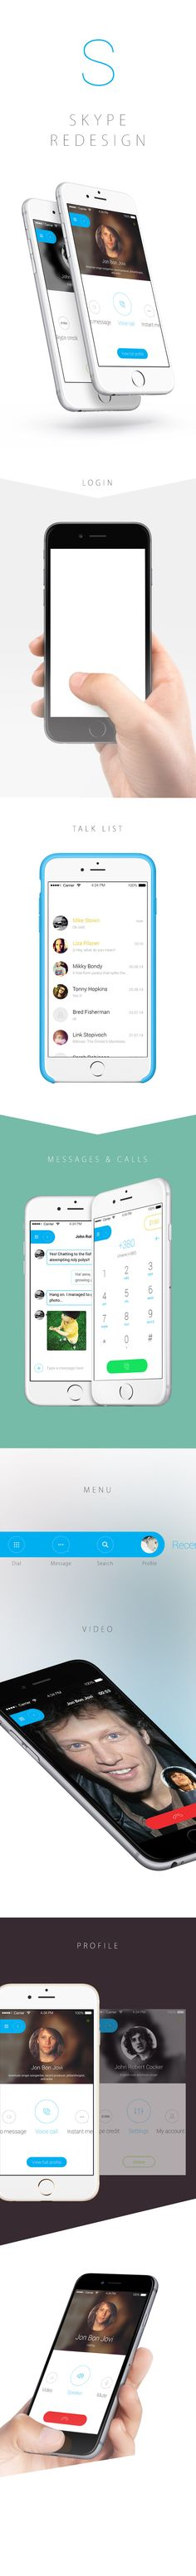 Mobile App Design Inspiration – Skype Redesign